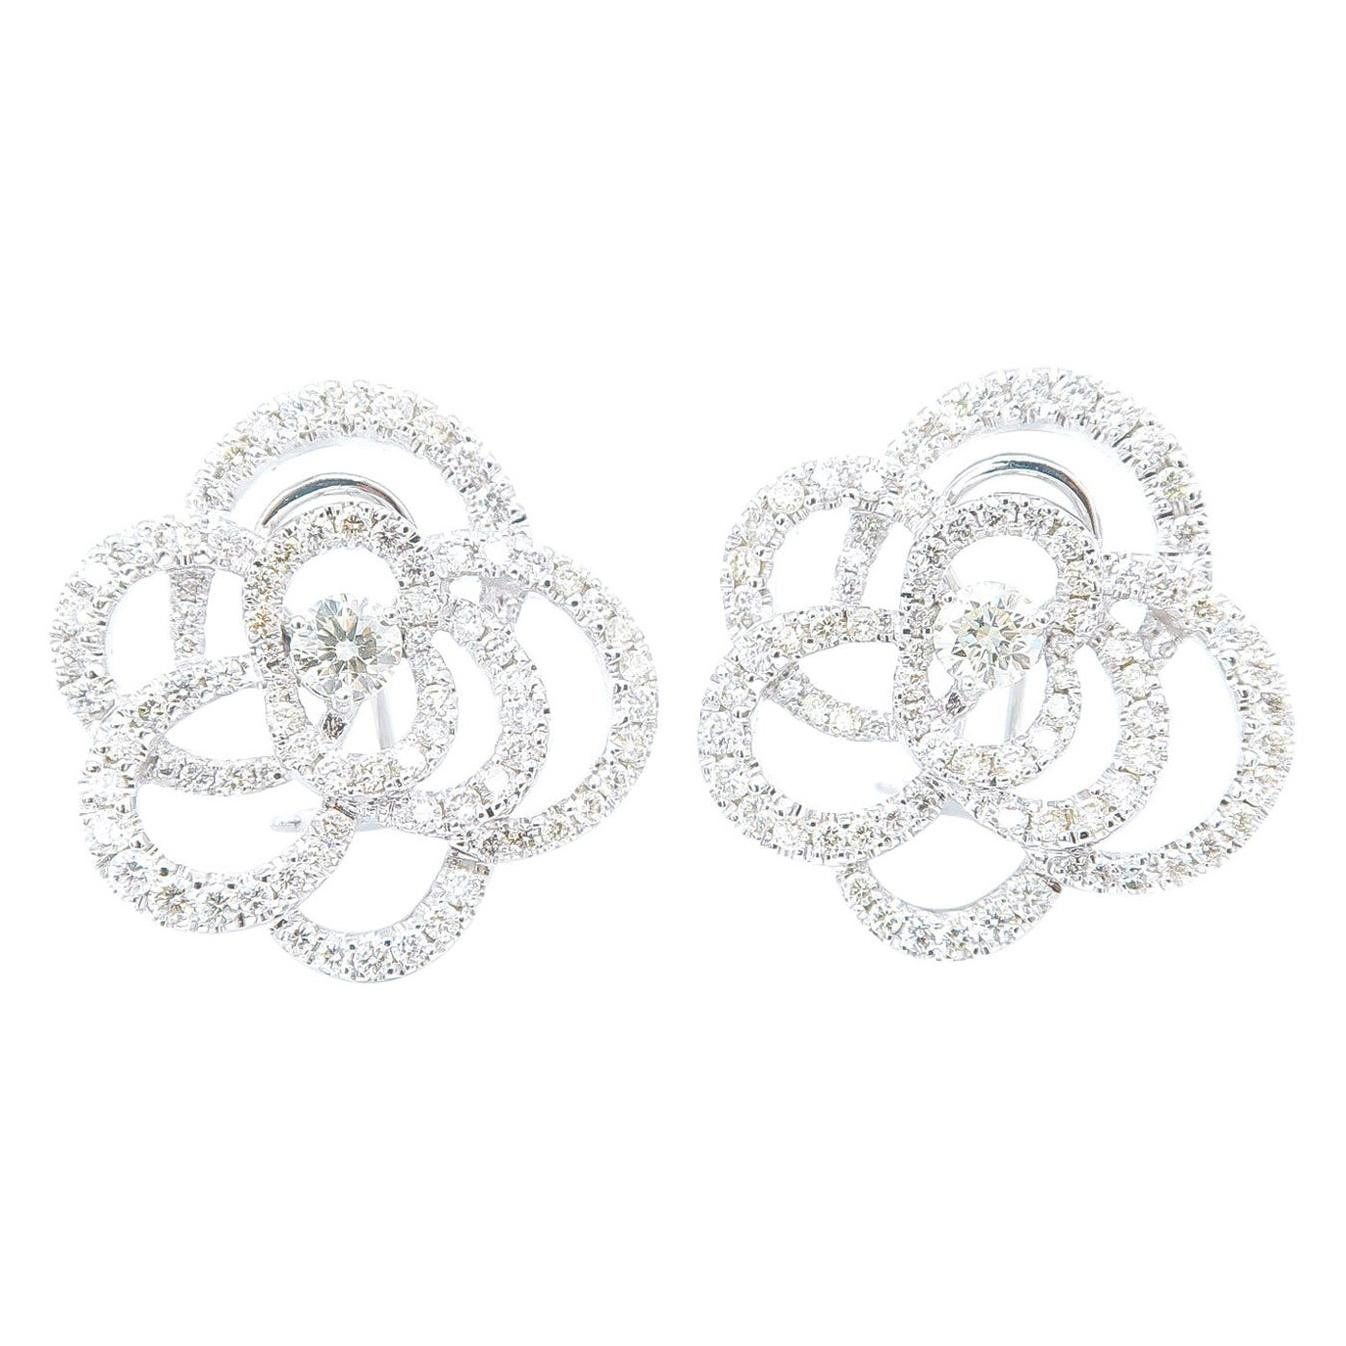 Large Floral Silhouette Diamond Clip-On Earrings in 18 Karat White Gold